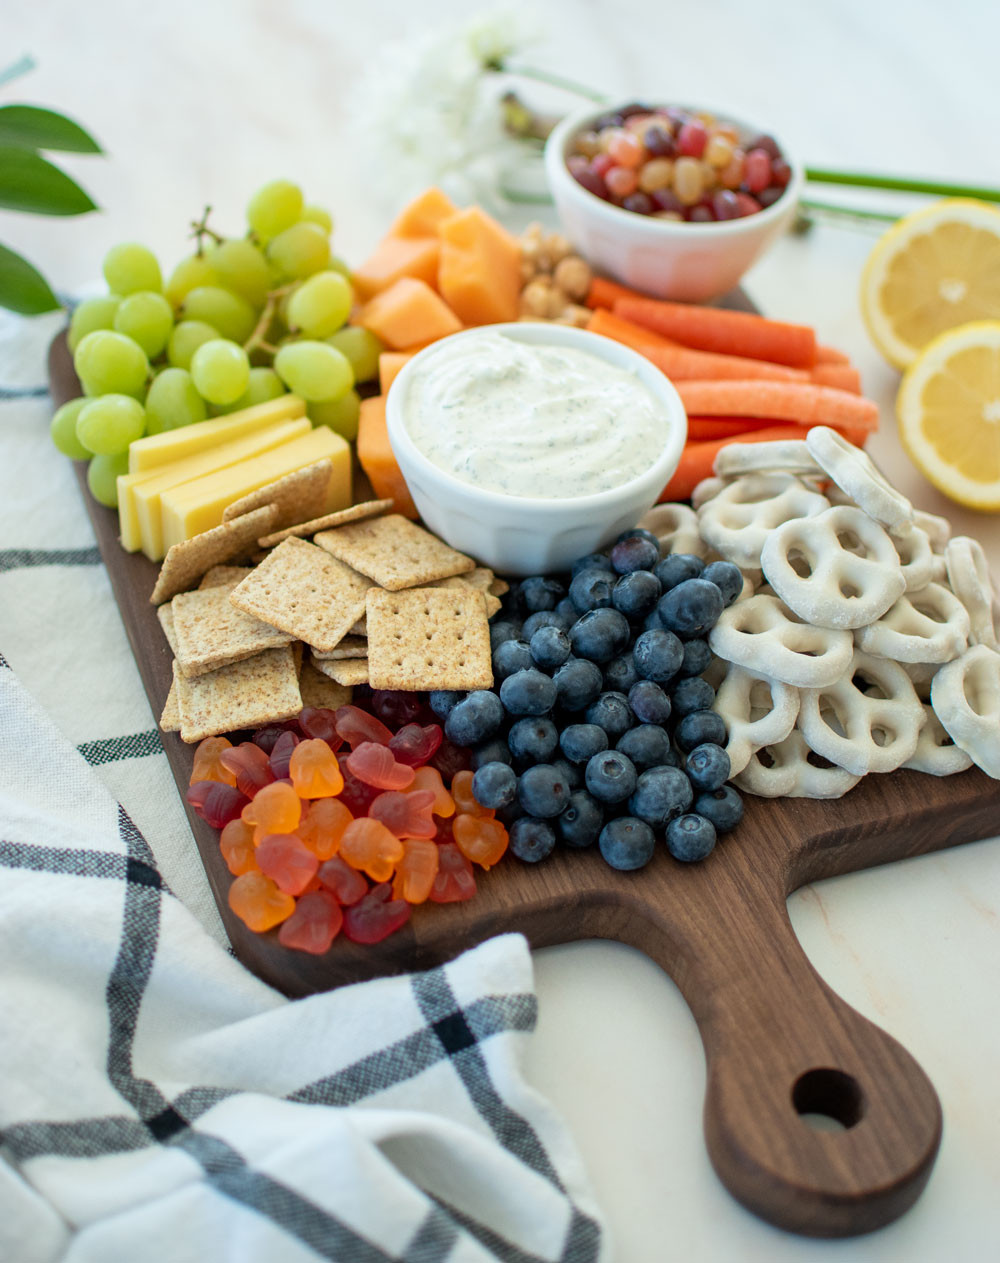 Easy Easter Cheeseboard recipe filled with cheese, fruits, veggies, and Easter candy. This simple cheeseboard recipe is so easy to make and perfect for an Easter appetizer or snack. It uses Easter candy along with a yummy homemade Dill Dip, crackers, cheese, and fruits and veggies. #organiceastercandy #organiccandy #cheeseboard #organiccheese #organicfruits #organicveggies #easycheeseboard #eastersnacks #appetizer #easterrecipe